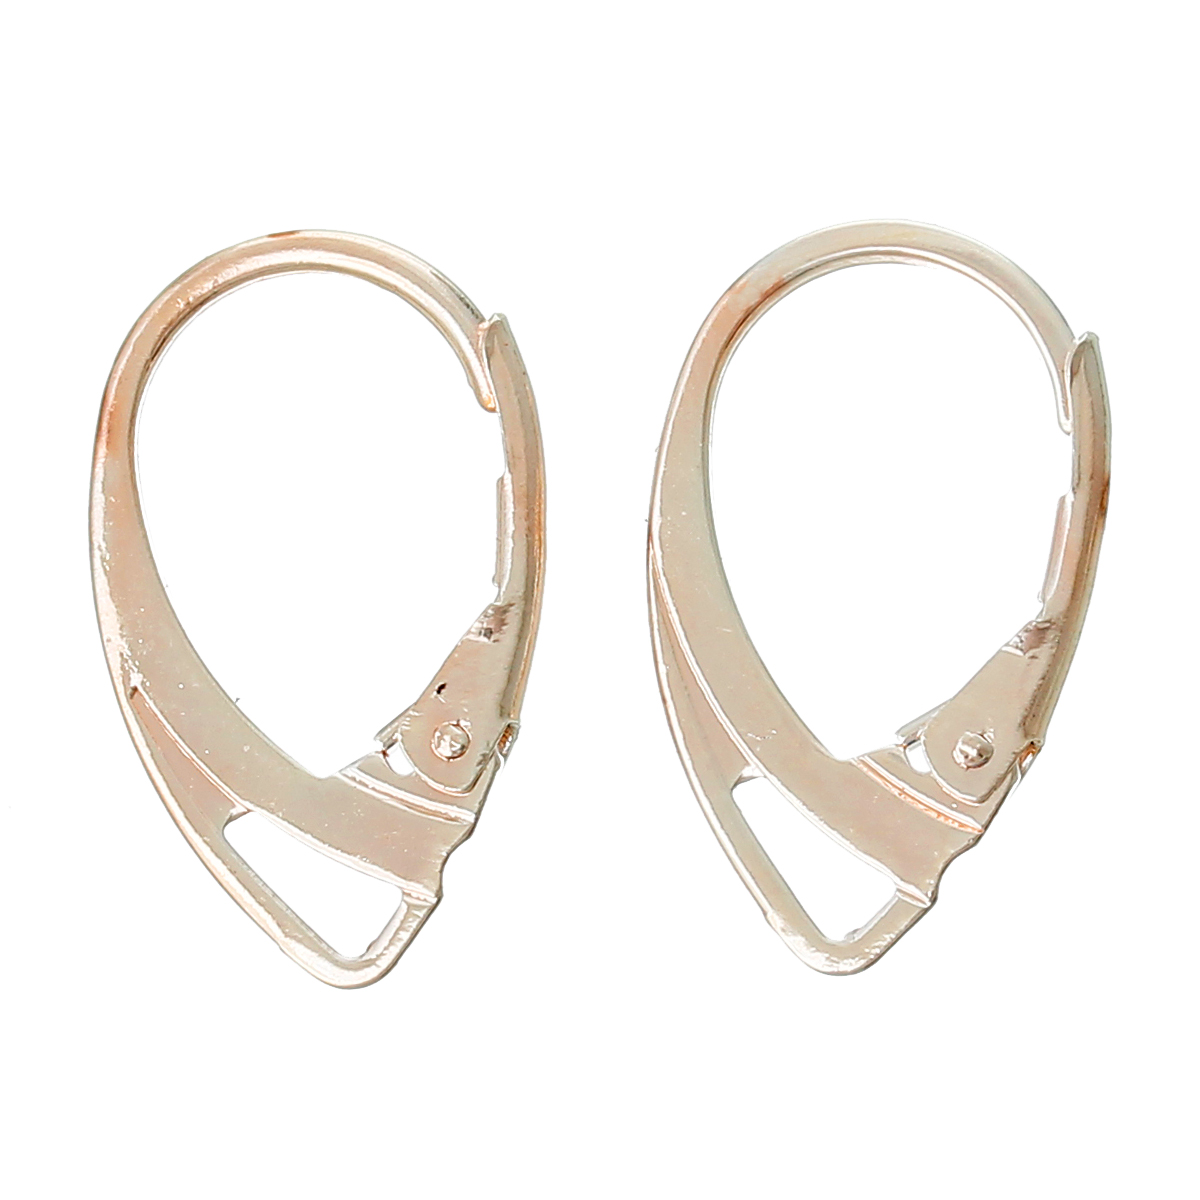 DoreenBeads Zinc metal alloy Earring Components Clips Earring Findings Rose golden 18mm( 6/8) x 11mm( 3/8), 2 Pieces 2017 newDoreenBeads Zinc metal alloy Earring Components Clips Earring Findings Rose golden 18mm( 6/8) x 11mm( 3/8), 2 Pieces 2017 new